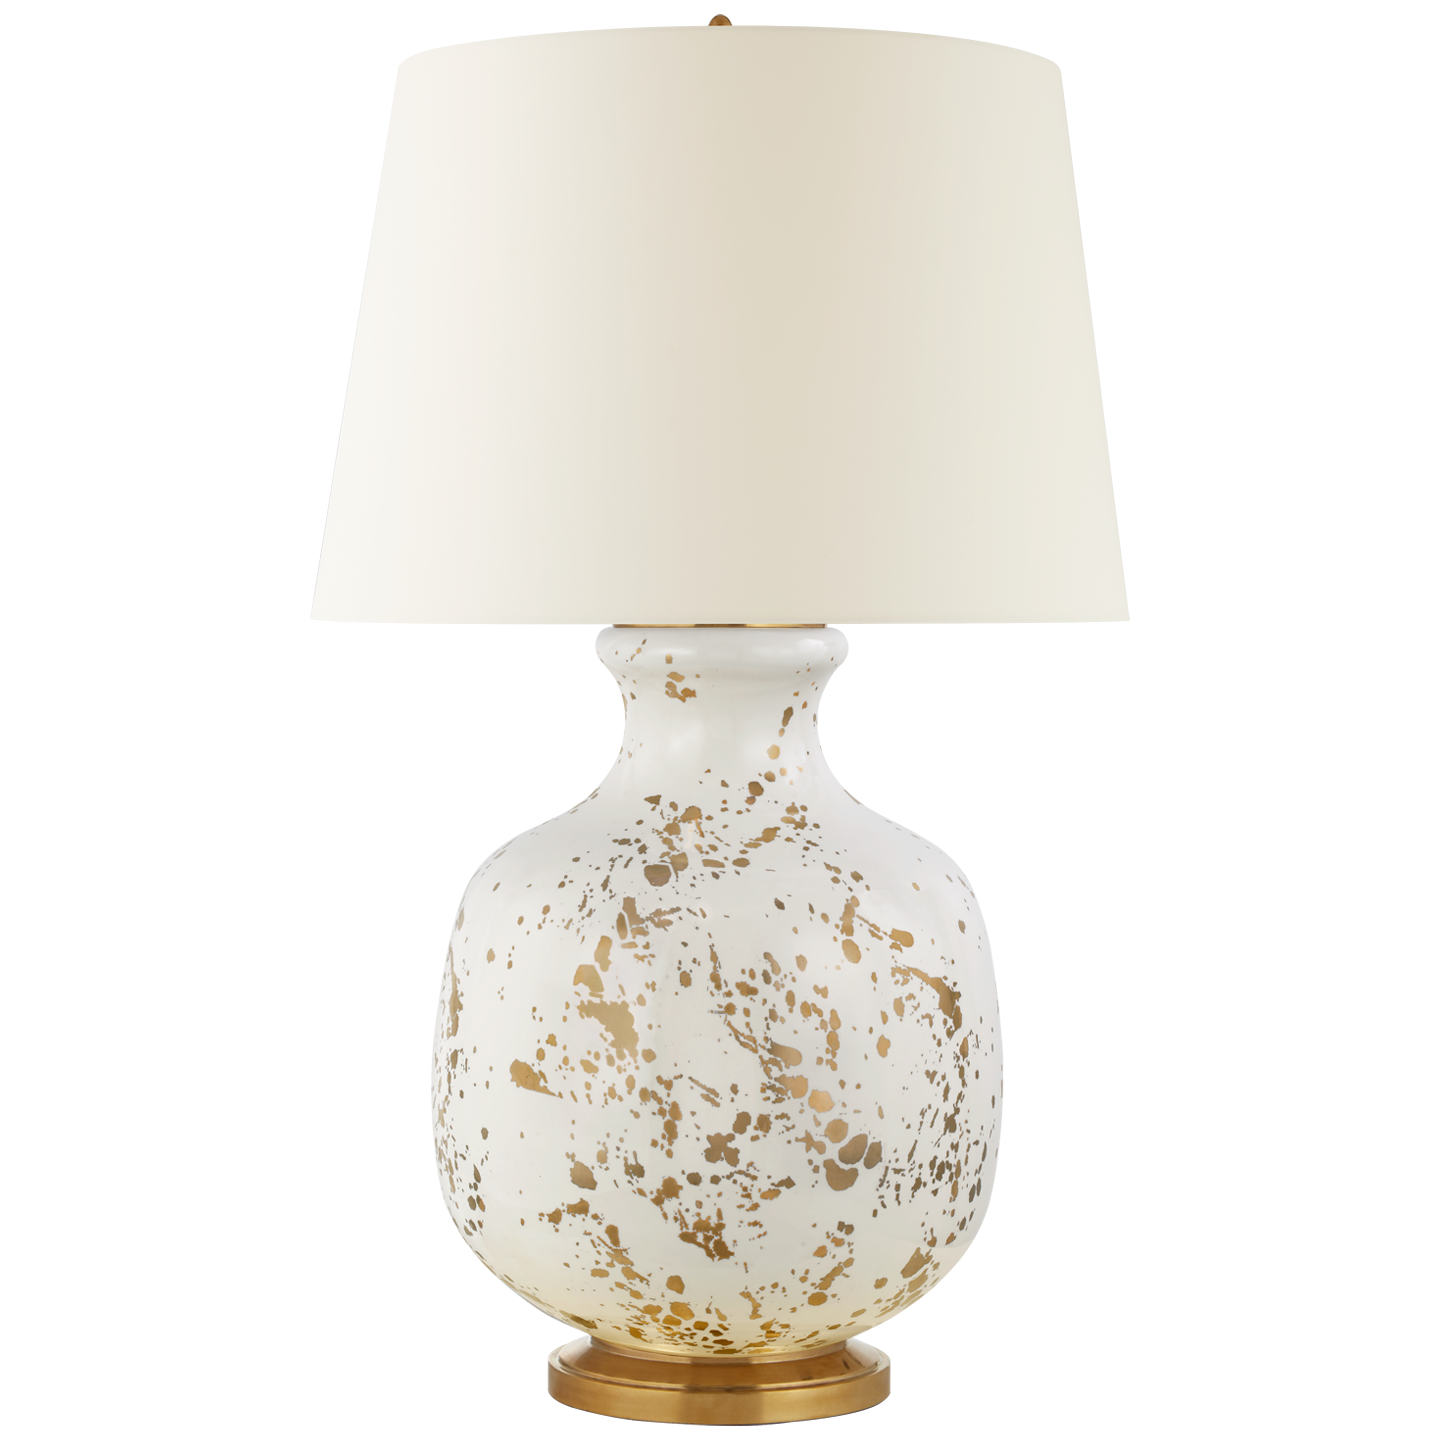 Buatta Large Table Lamp | Large table lamps, Table lamp, Ceiling ...